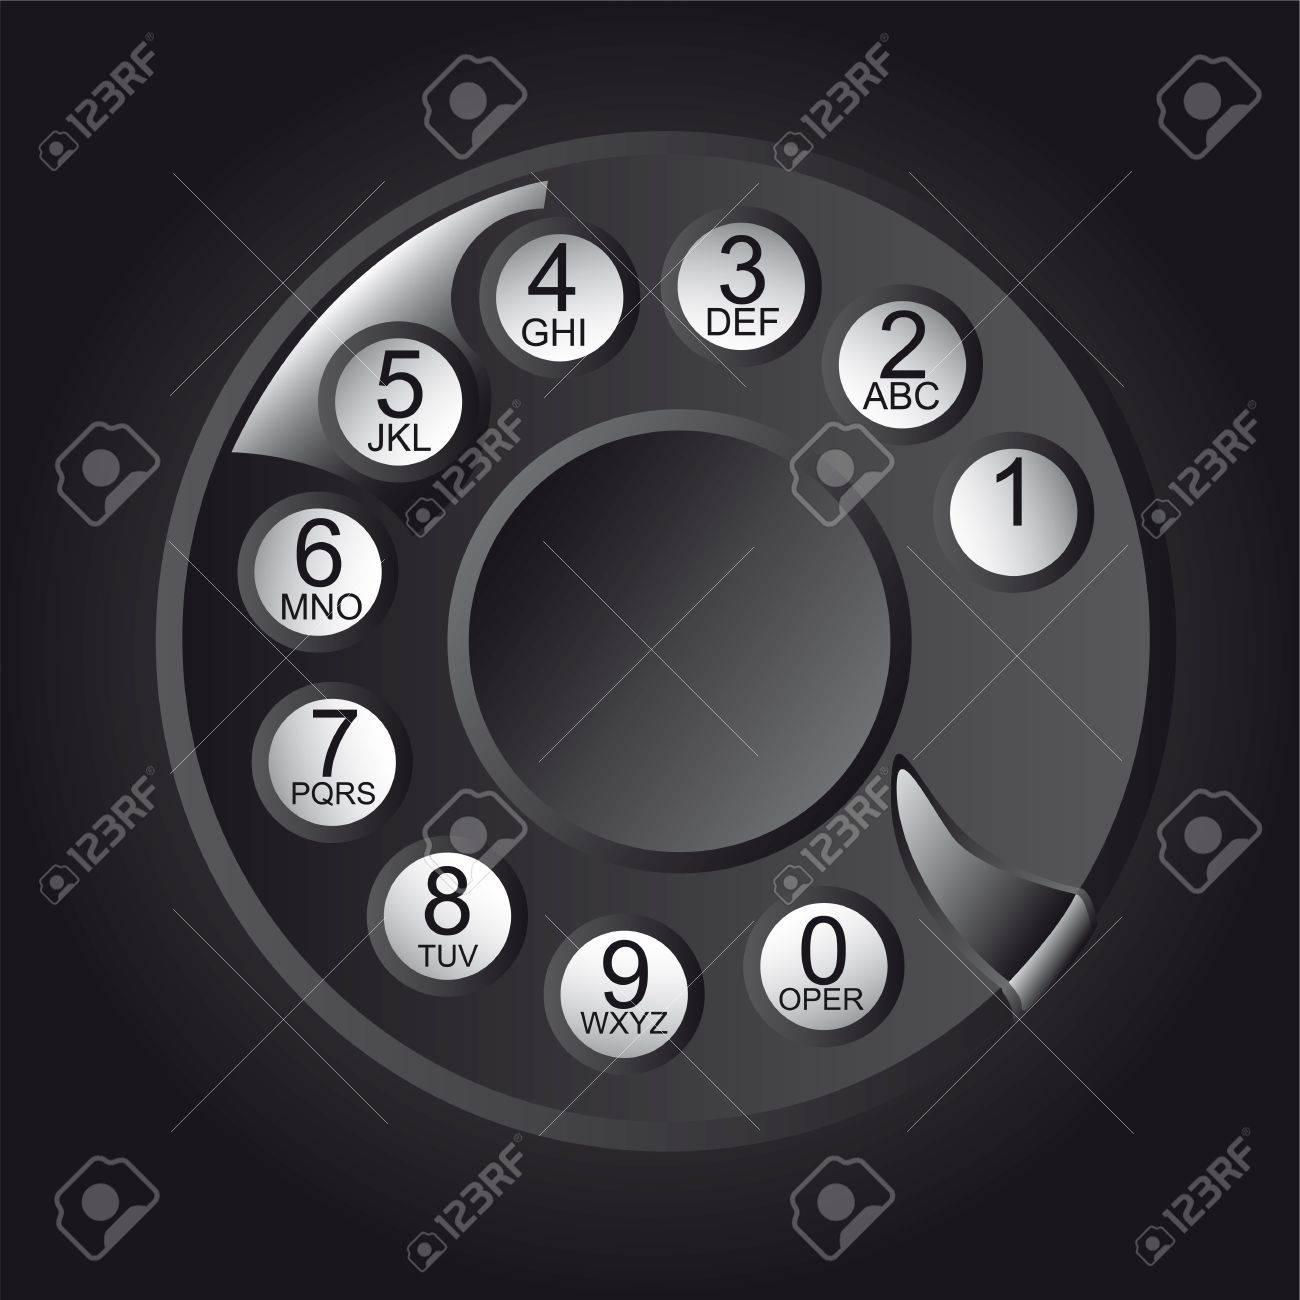 Rotary Phone Dial with numbers and letters